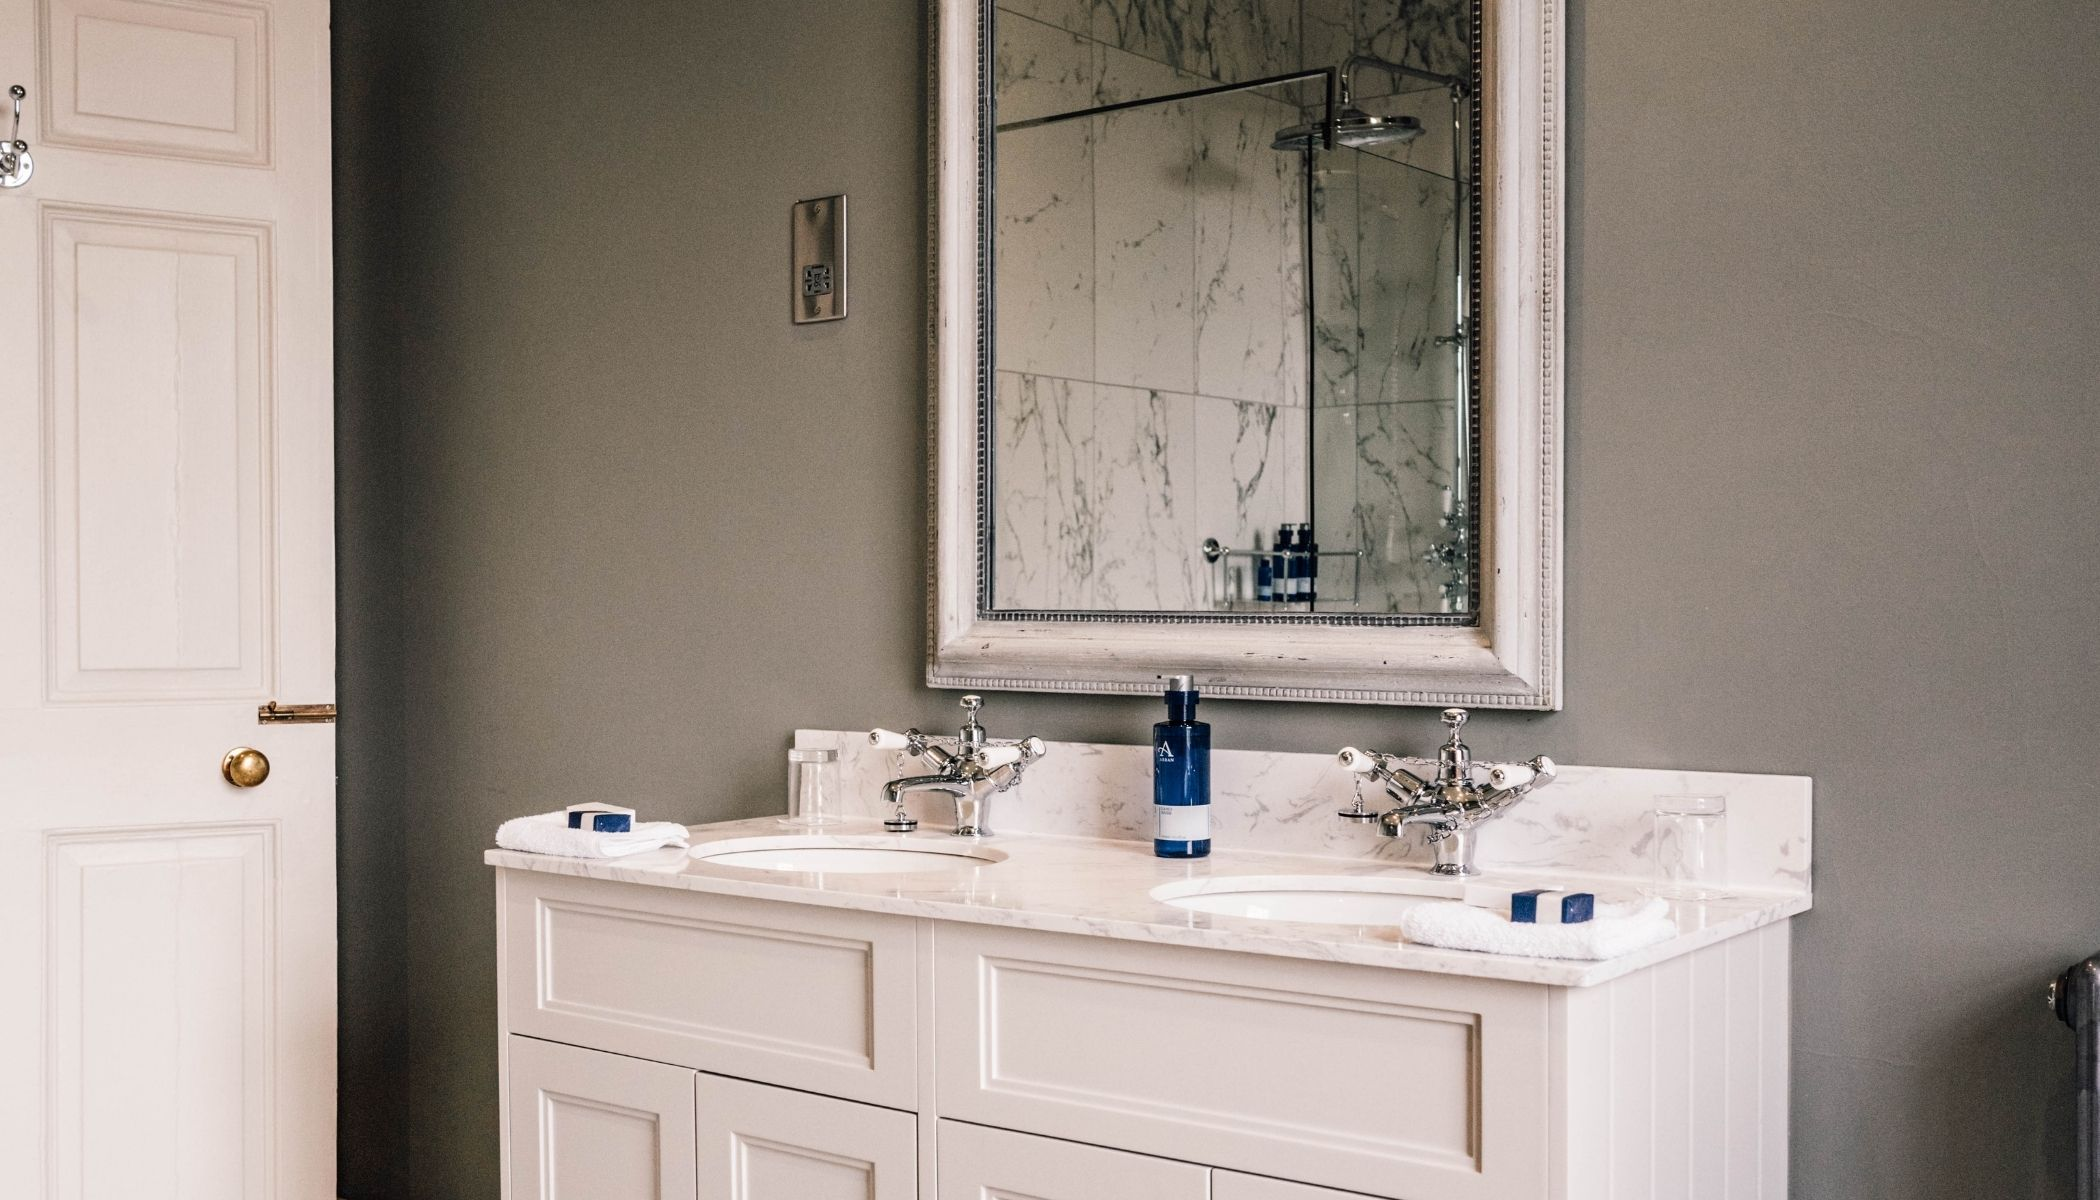 Cairnmore - His and Her Sinks